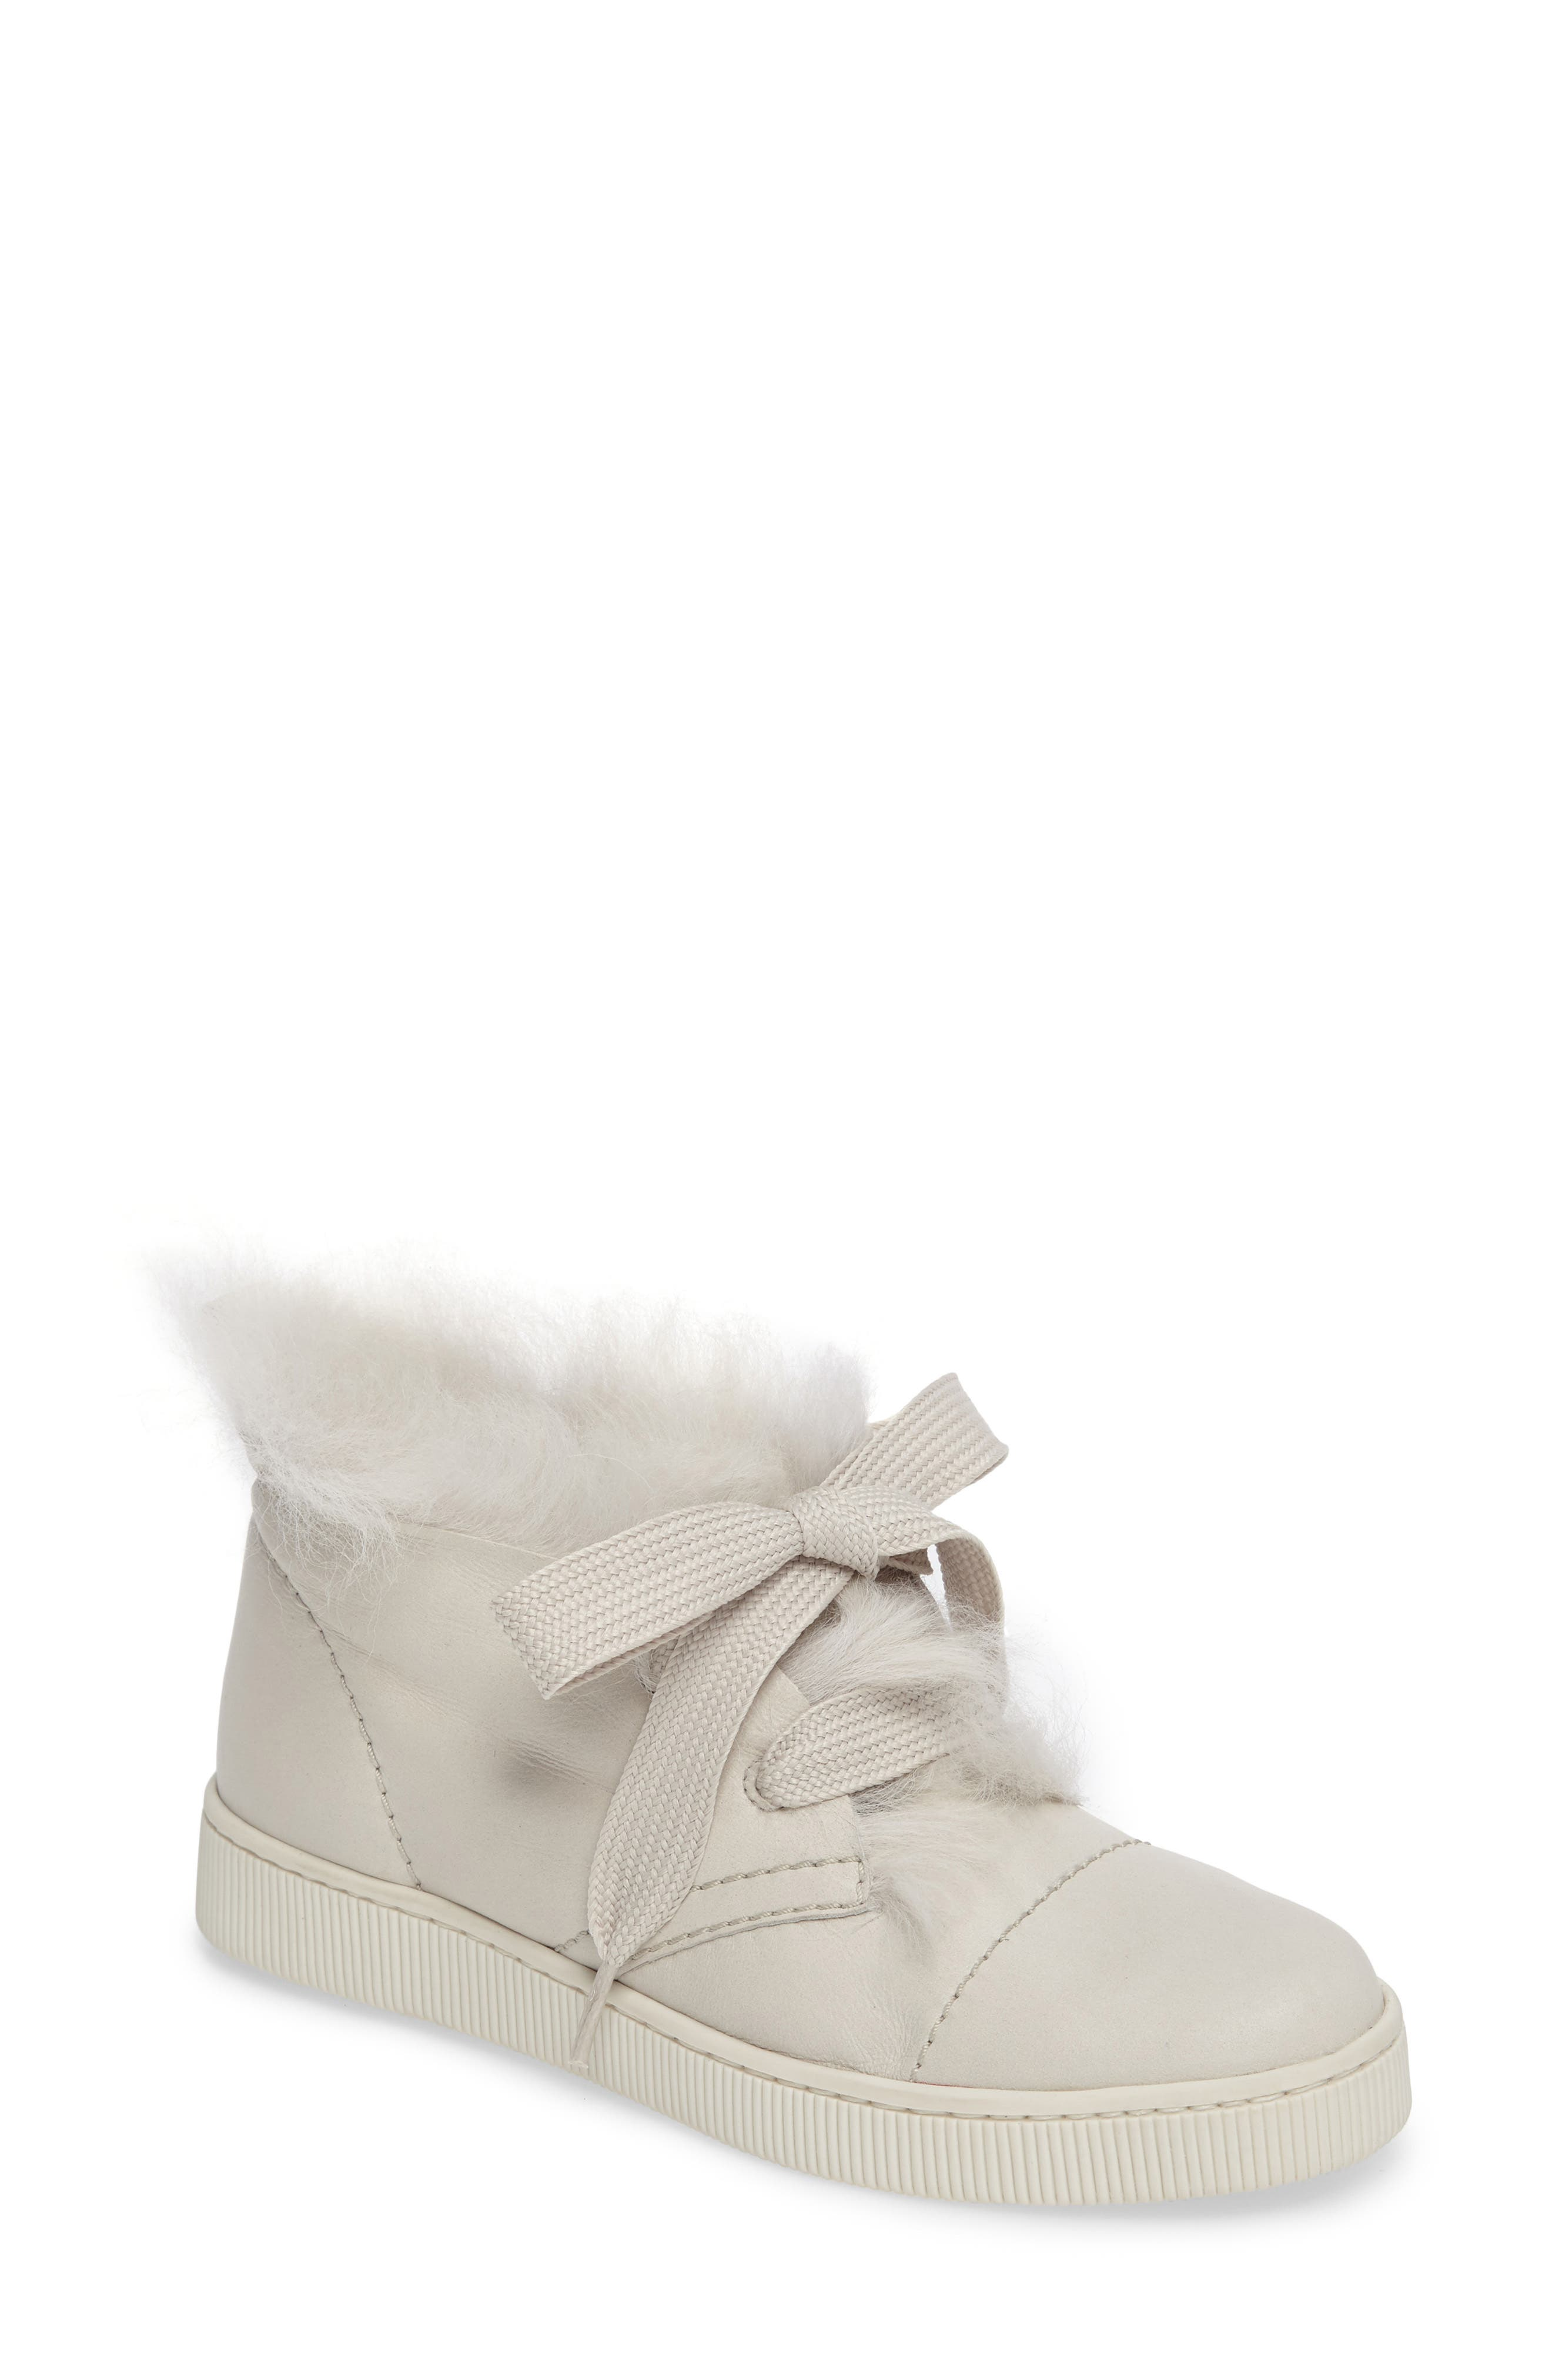 Pedro Garcia Parley Genuine Shearling & Leather Sneaker (Women)